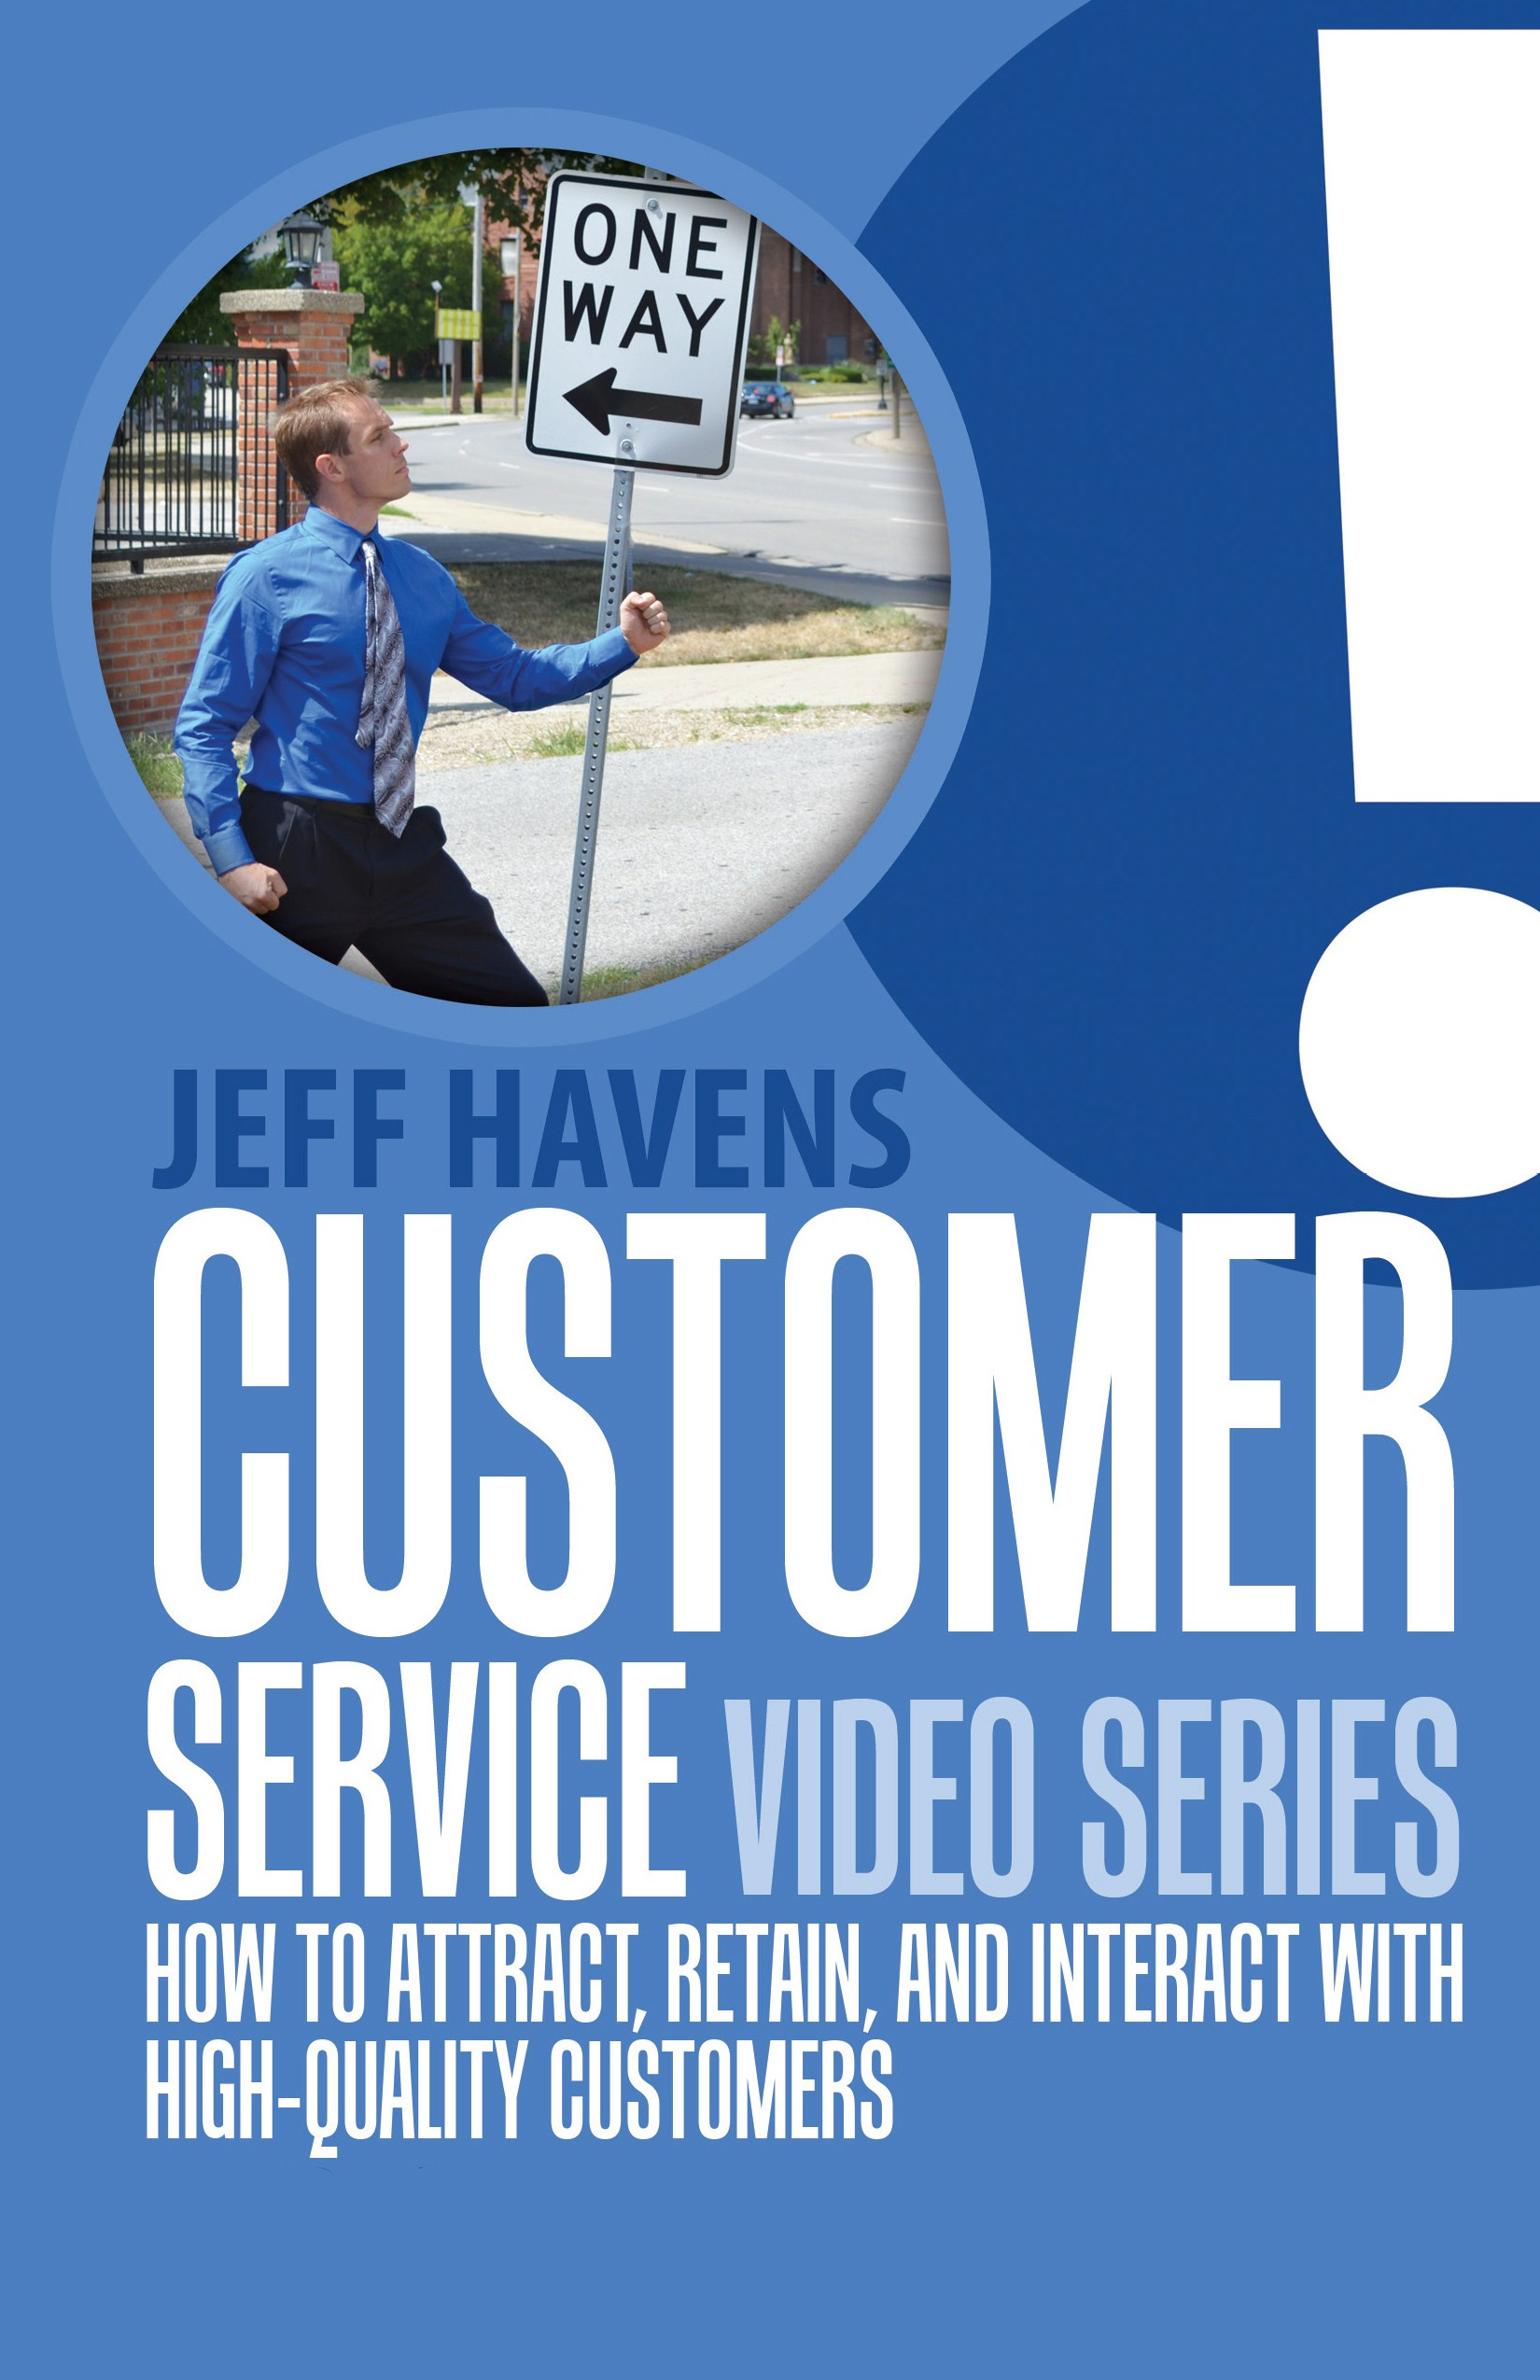 Customer Service Video Series: How to Attract, Retain, and Interact with High-Quality Customers